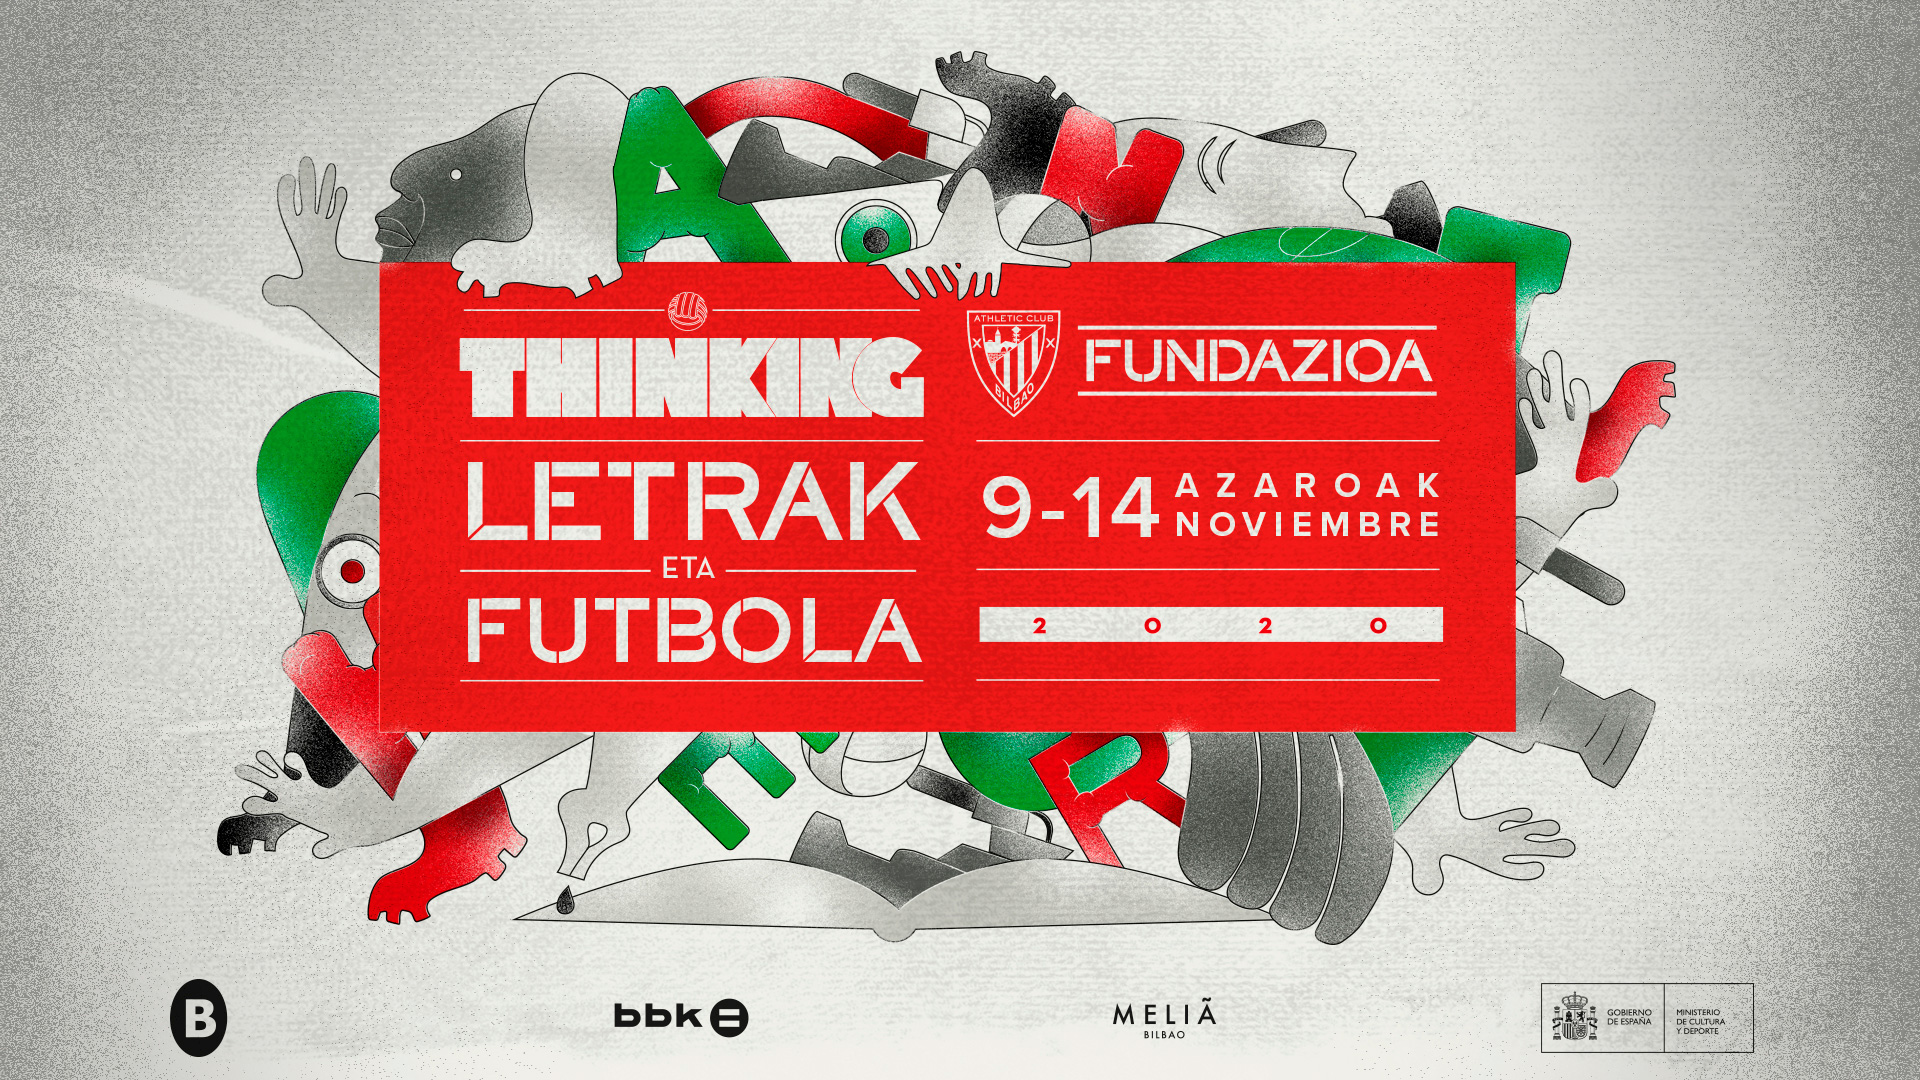 Thinking, Letrak eta Futbola kicks off